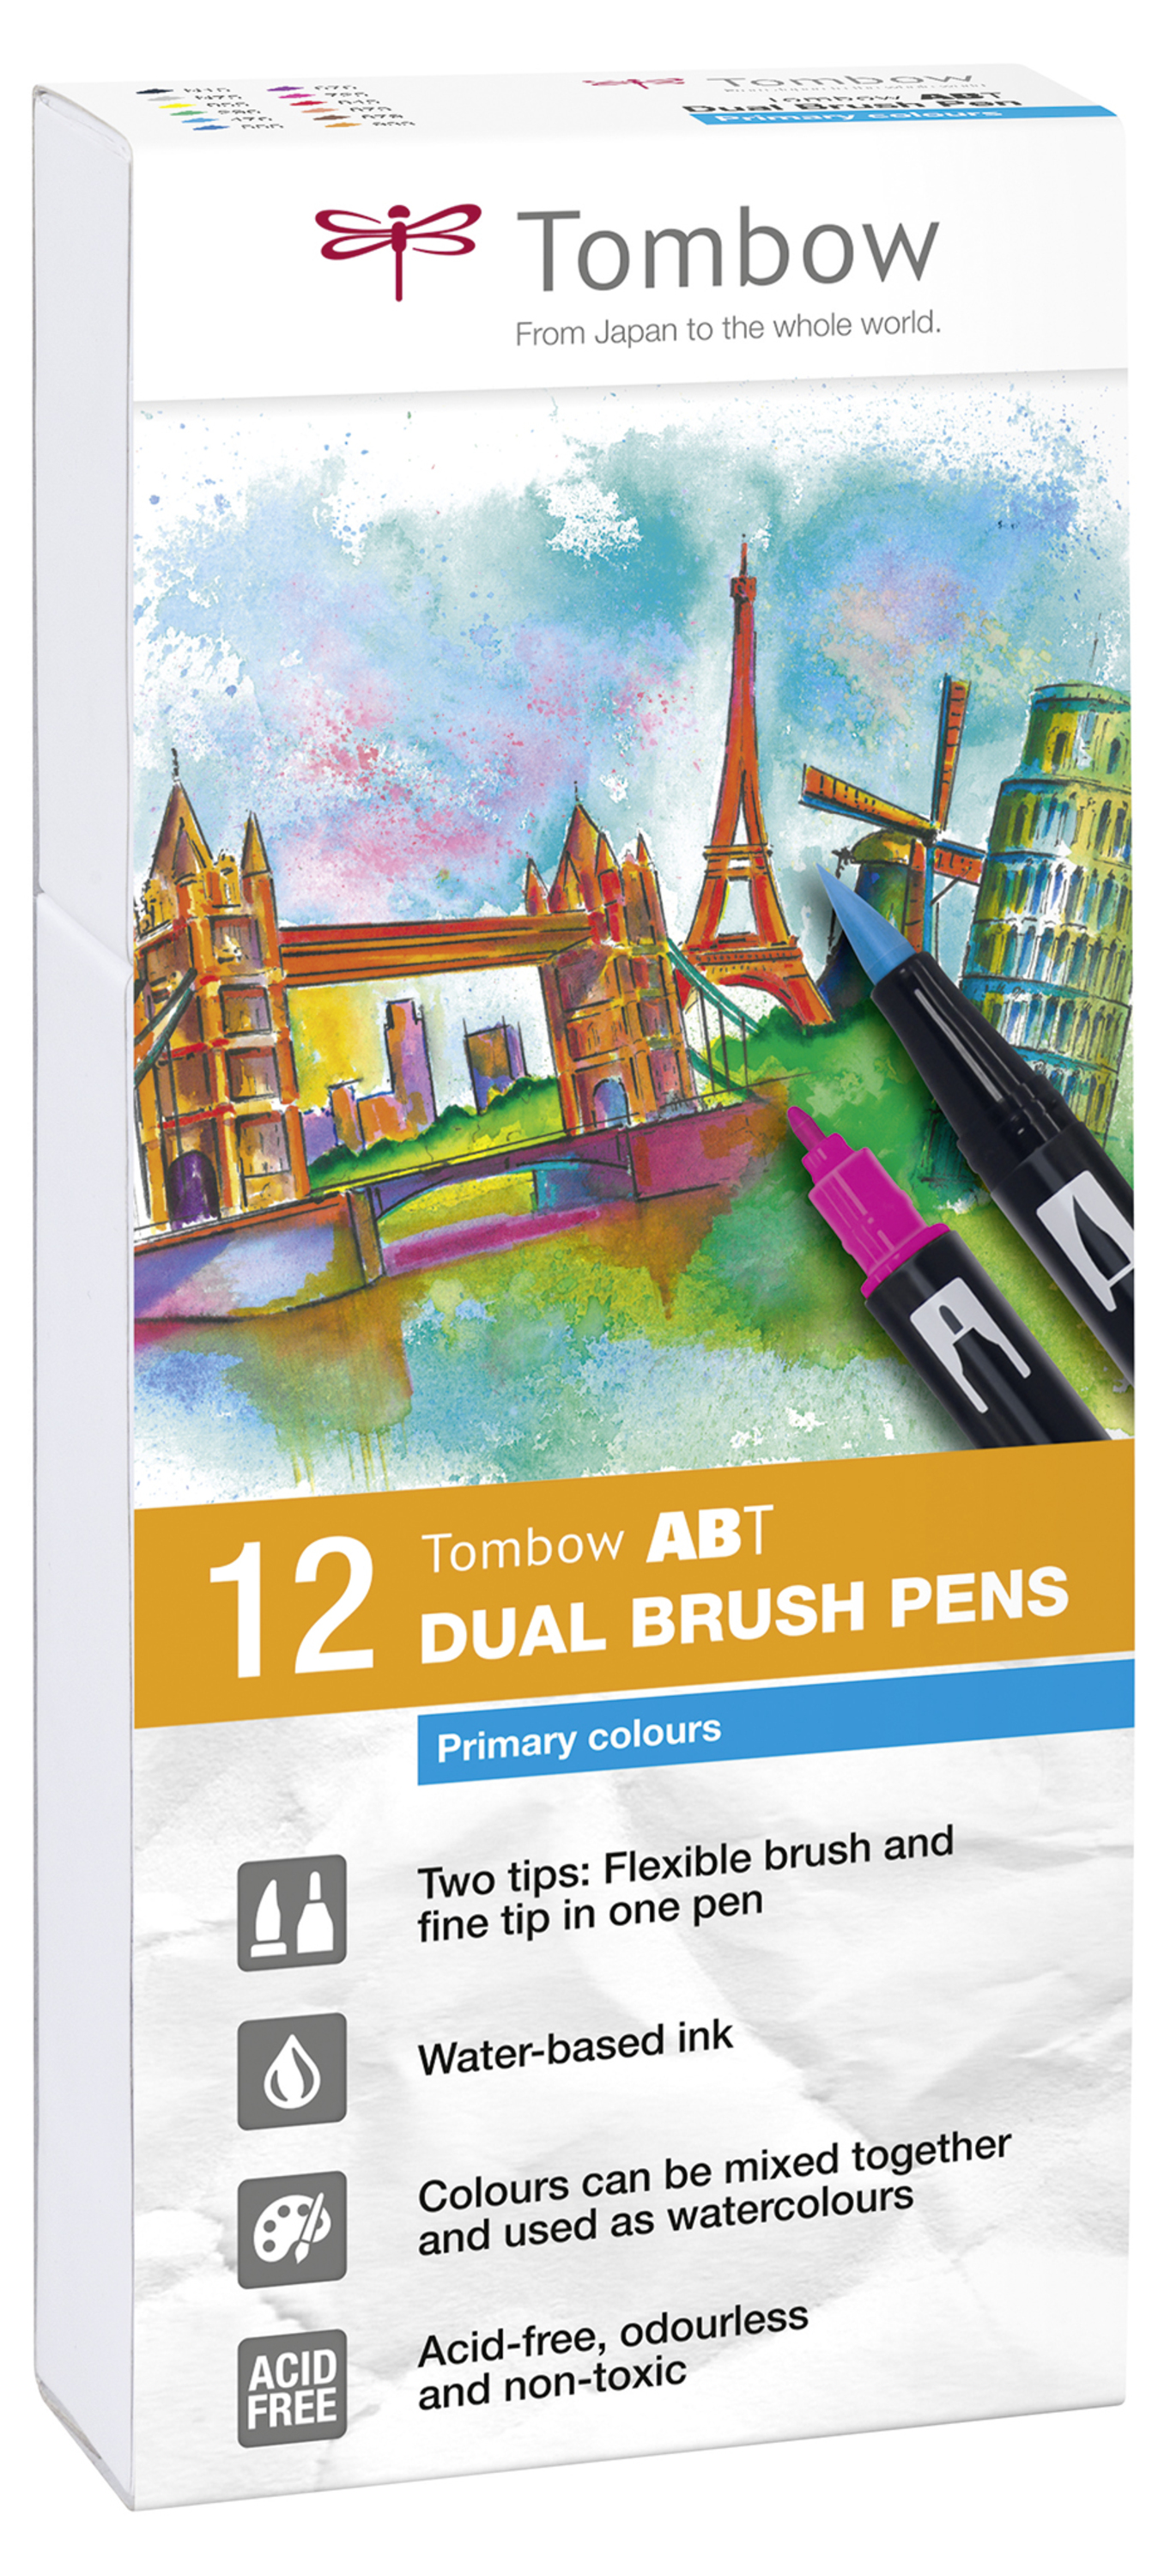 Tombow ABT Dual Brush Pen 2 tips Primary Colours PK12